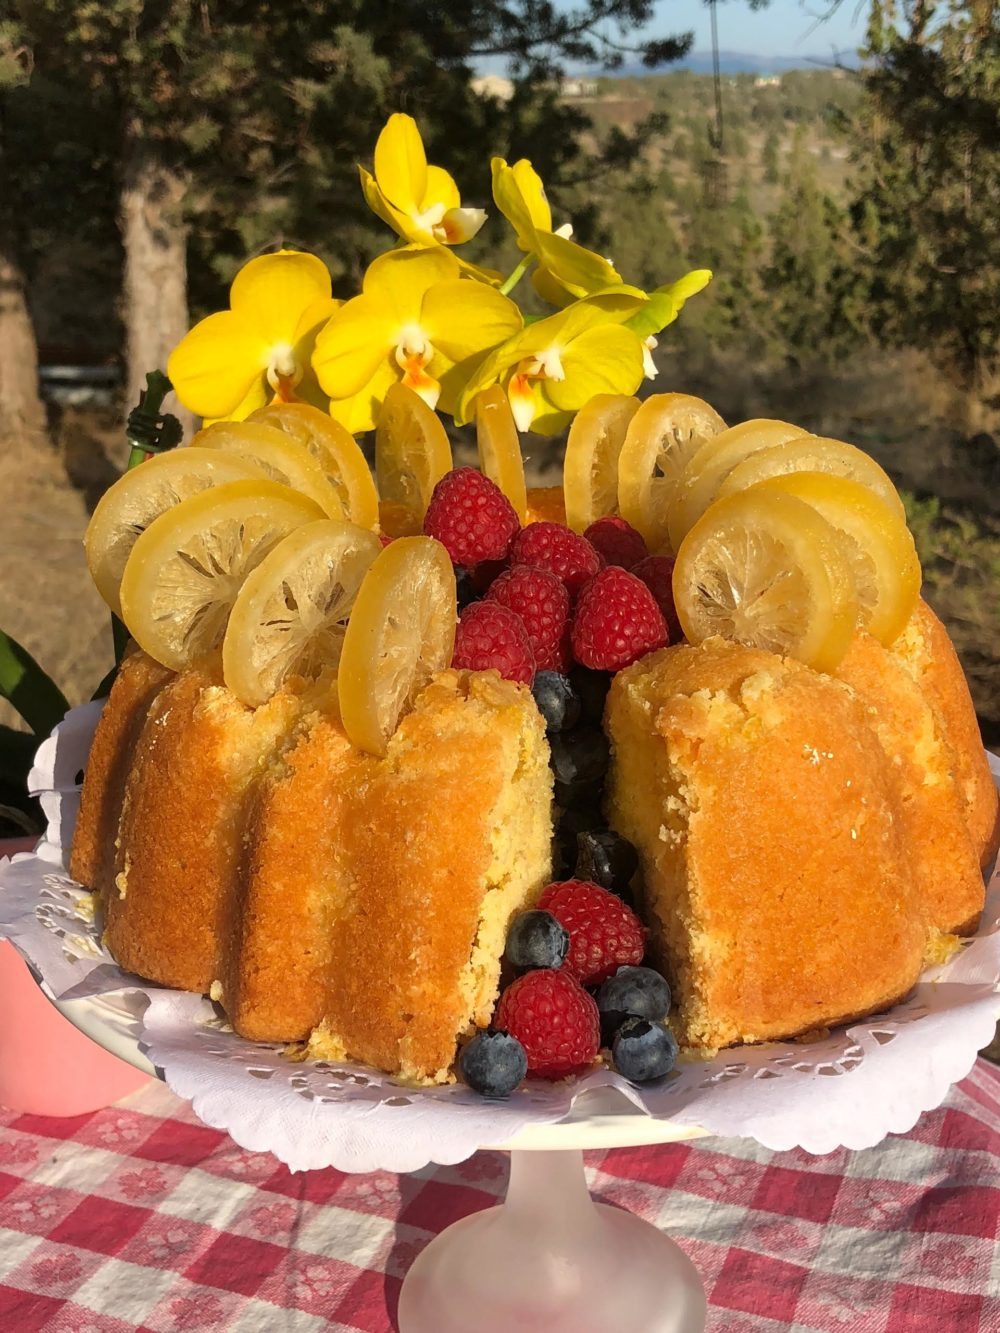 Pound Cake Raspberries And Candied Citrus